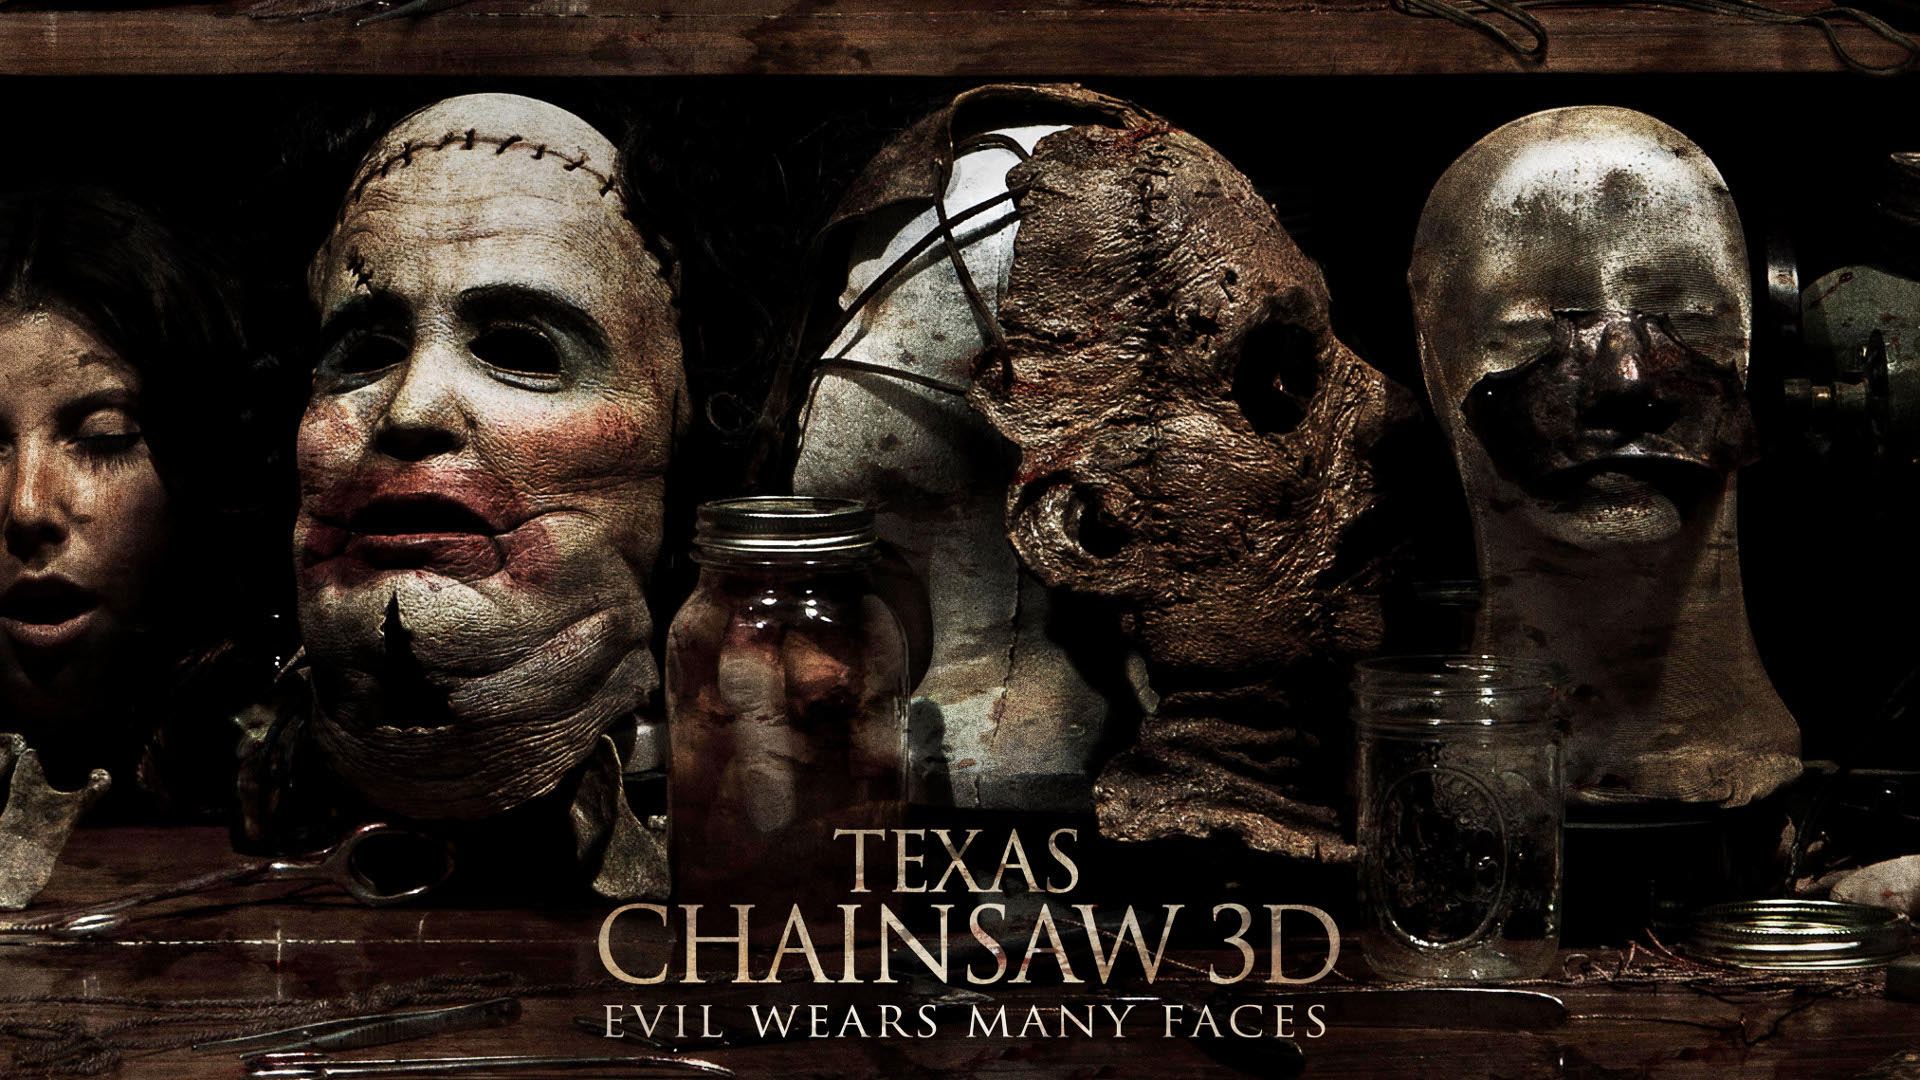 texas_chainsaw_3d_wallpaper_by_edheadkt-d5dcdfx